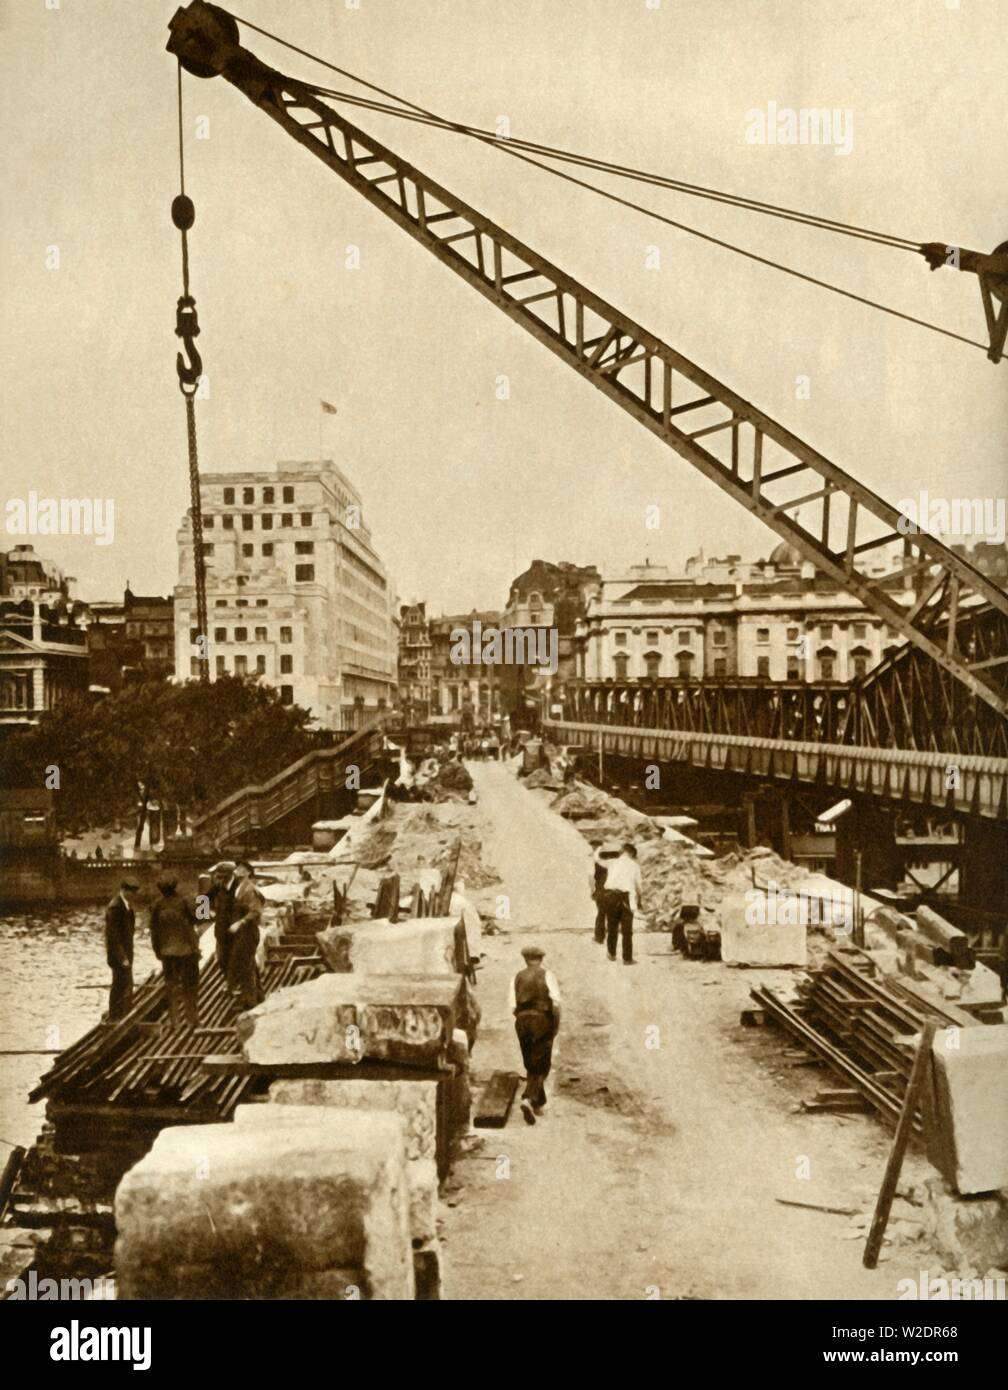 "The rebuilding of Waterloo Bridge, London, 1934, (1935). London County Council demolished the old bridge which was damaged, and commissioned a new structure designed by Sir Giles Gilbert Scott. The project was placed on hold due to the Second World War. The only Thames bridge to have been damaged by German bombers during the war, it was not fully completed until 1945. From ""The Silver Jubilee Book - The Story of 25 Eventful Years in Pictures"". [Odhams Press Ltd., London, 1935] - Stock Image"